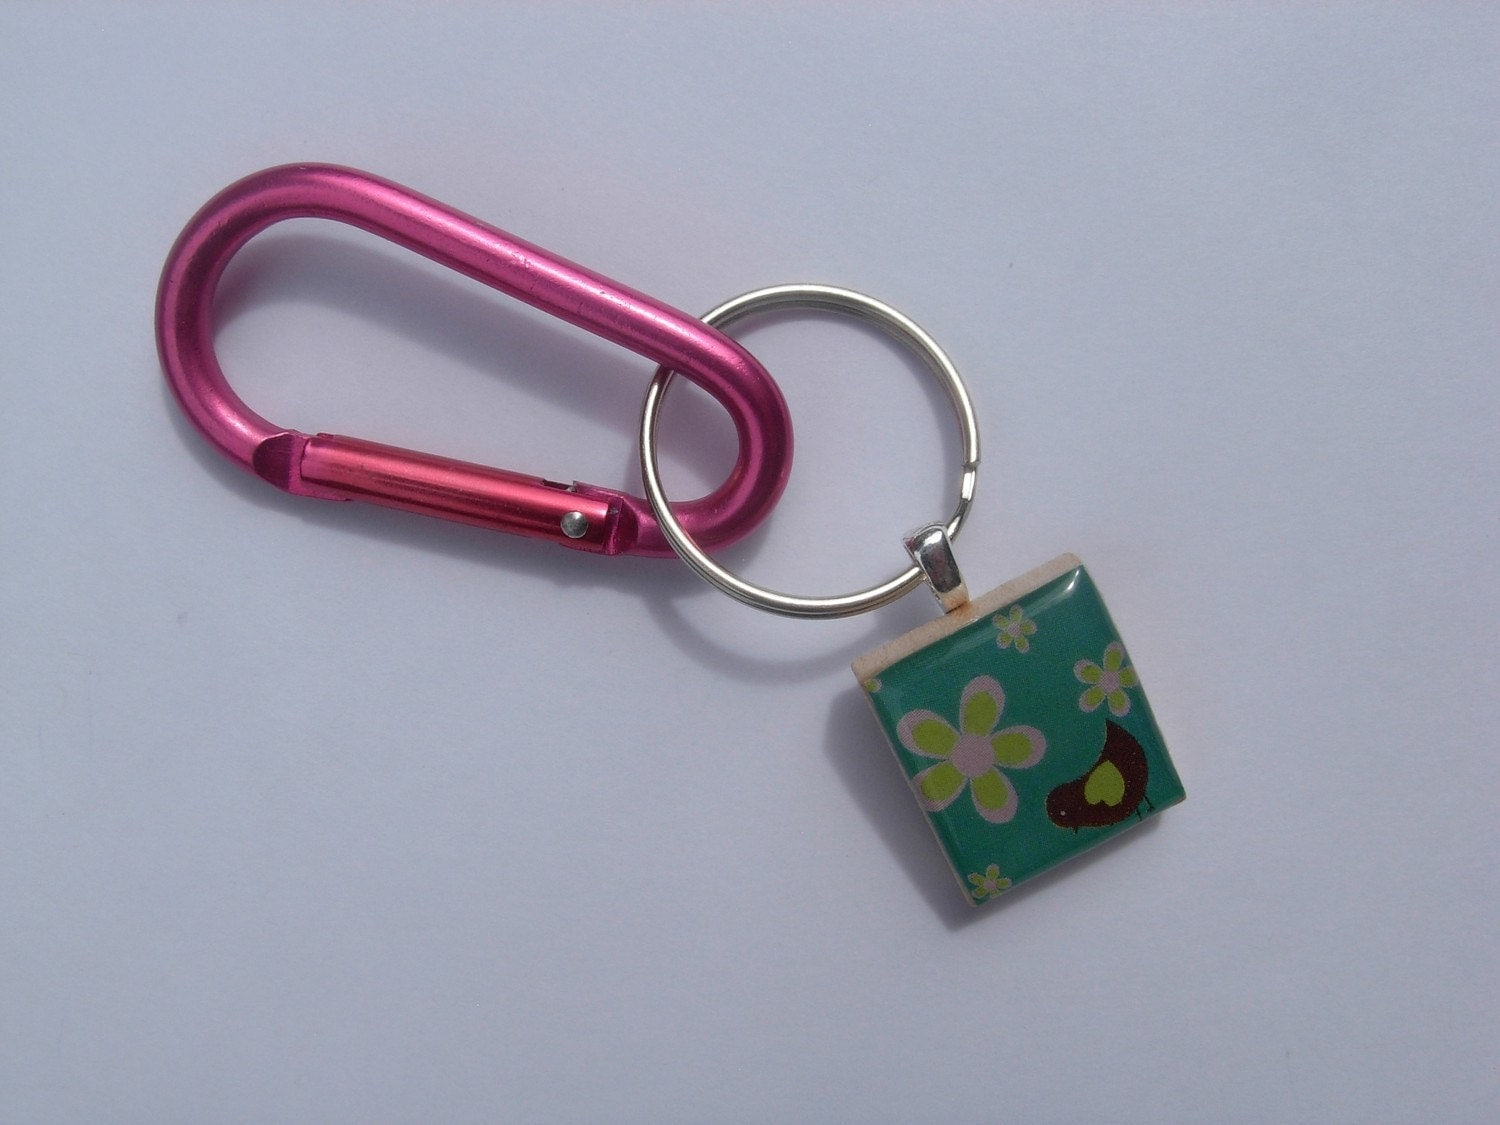 PINK Carabiner Keychain attachment for your Scrabble Tile Pendant